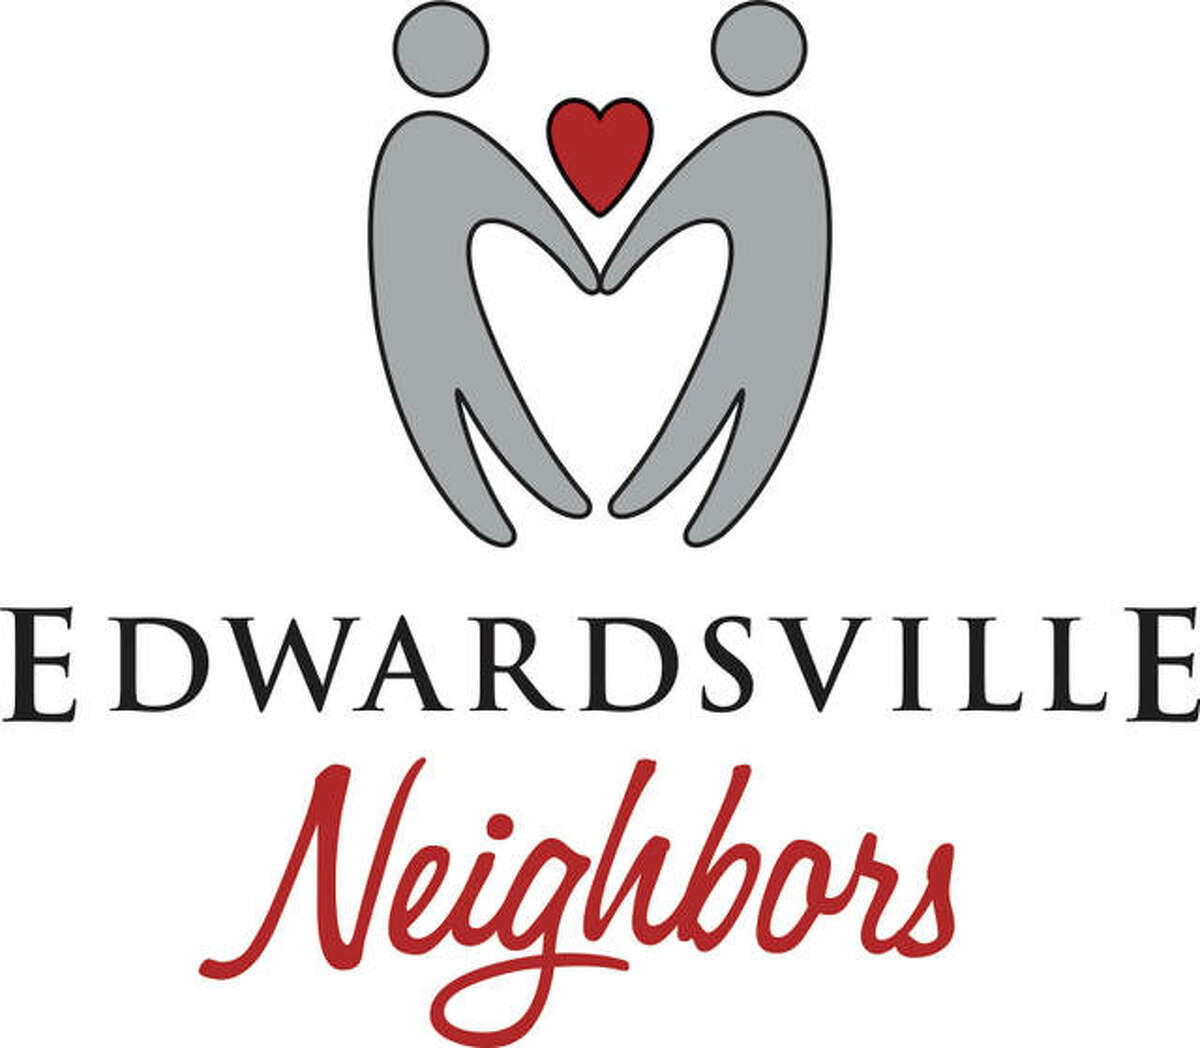 Of EXO's Diamonds in the Dark proceeds, 10% will be donated to Edwardsville Neighbors. Food vendors also will be donating 10% of their sales.